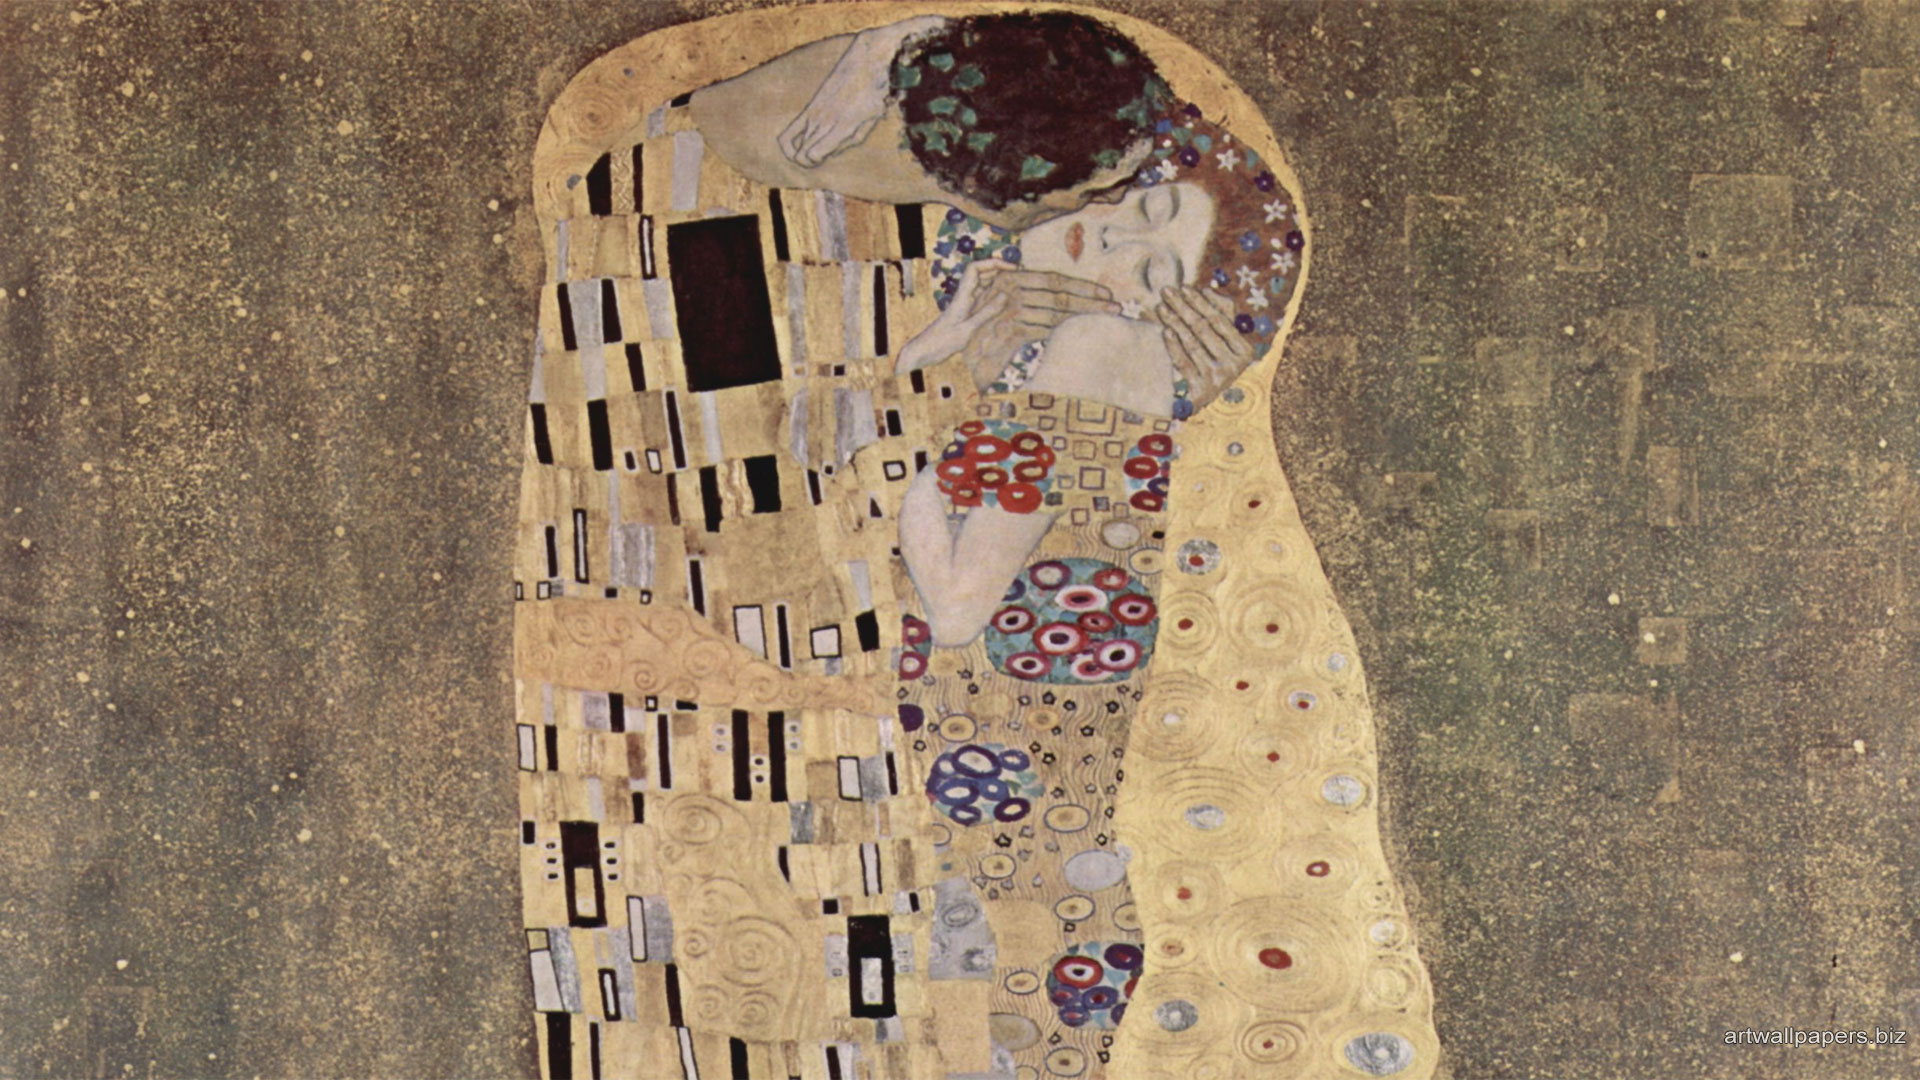 Gustav Klimt Wallpaper 1.jpg